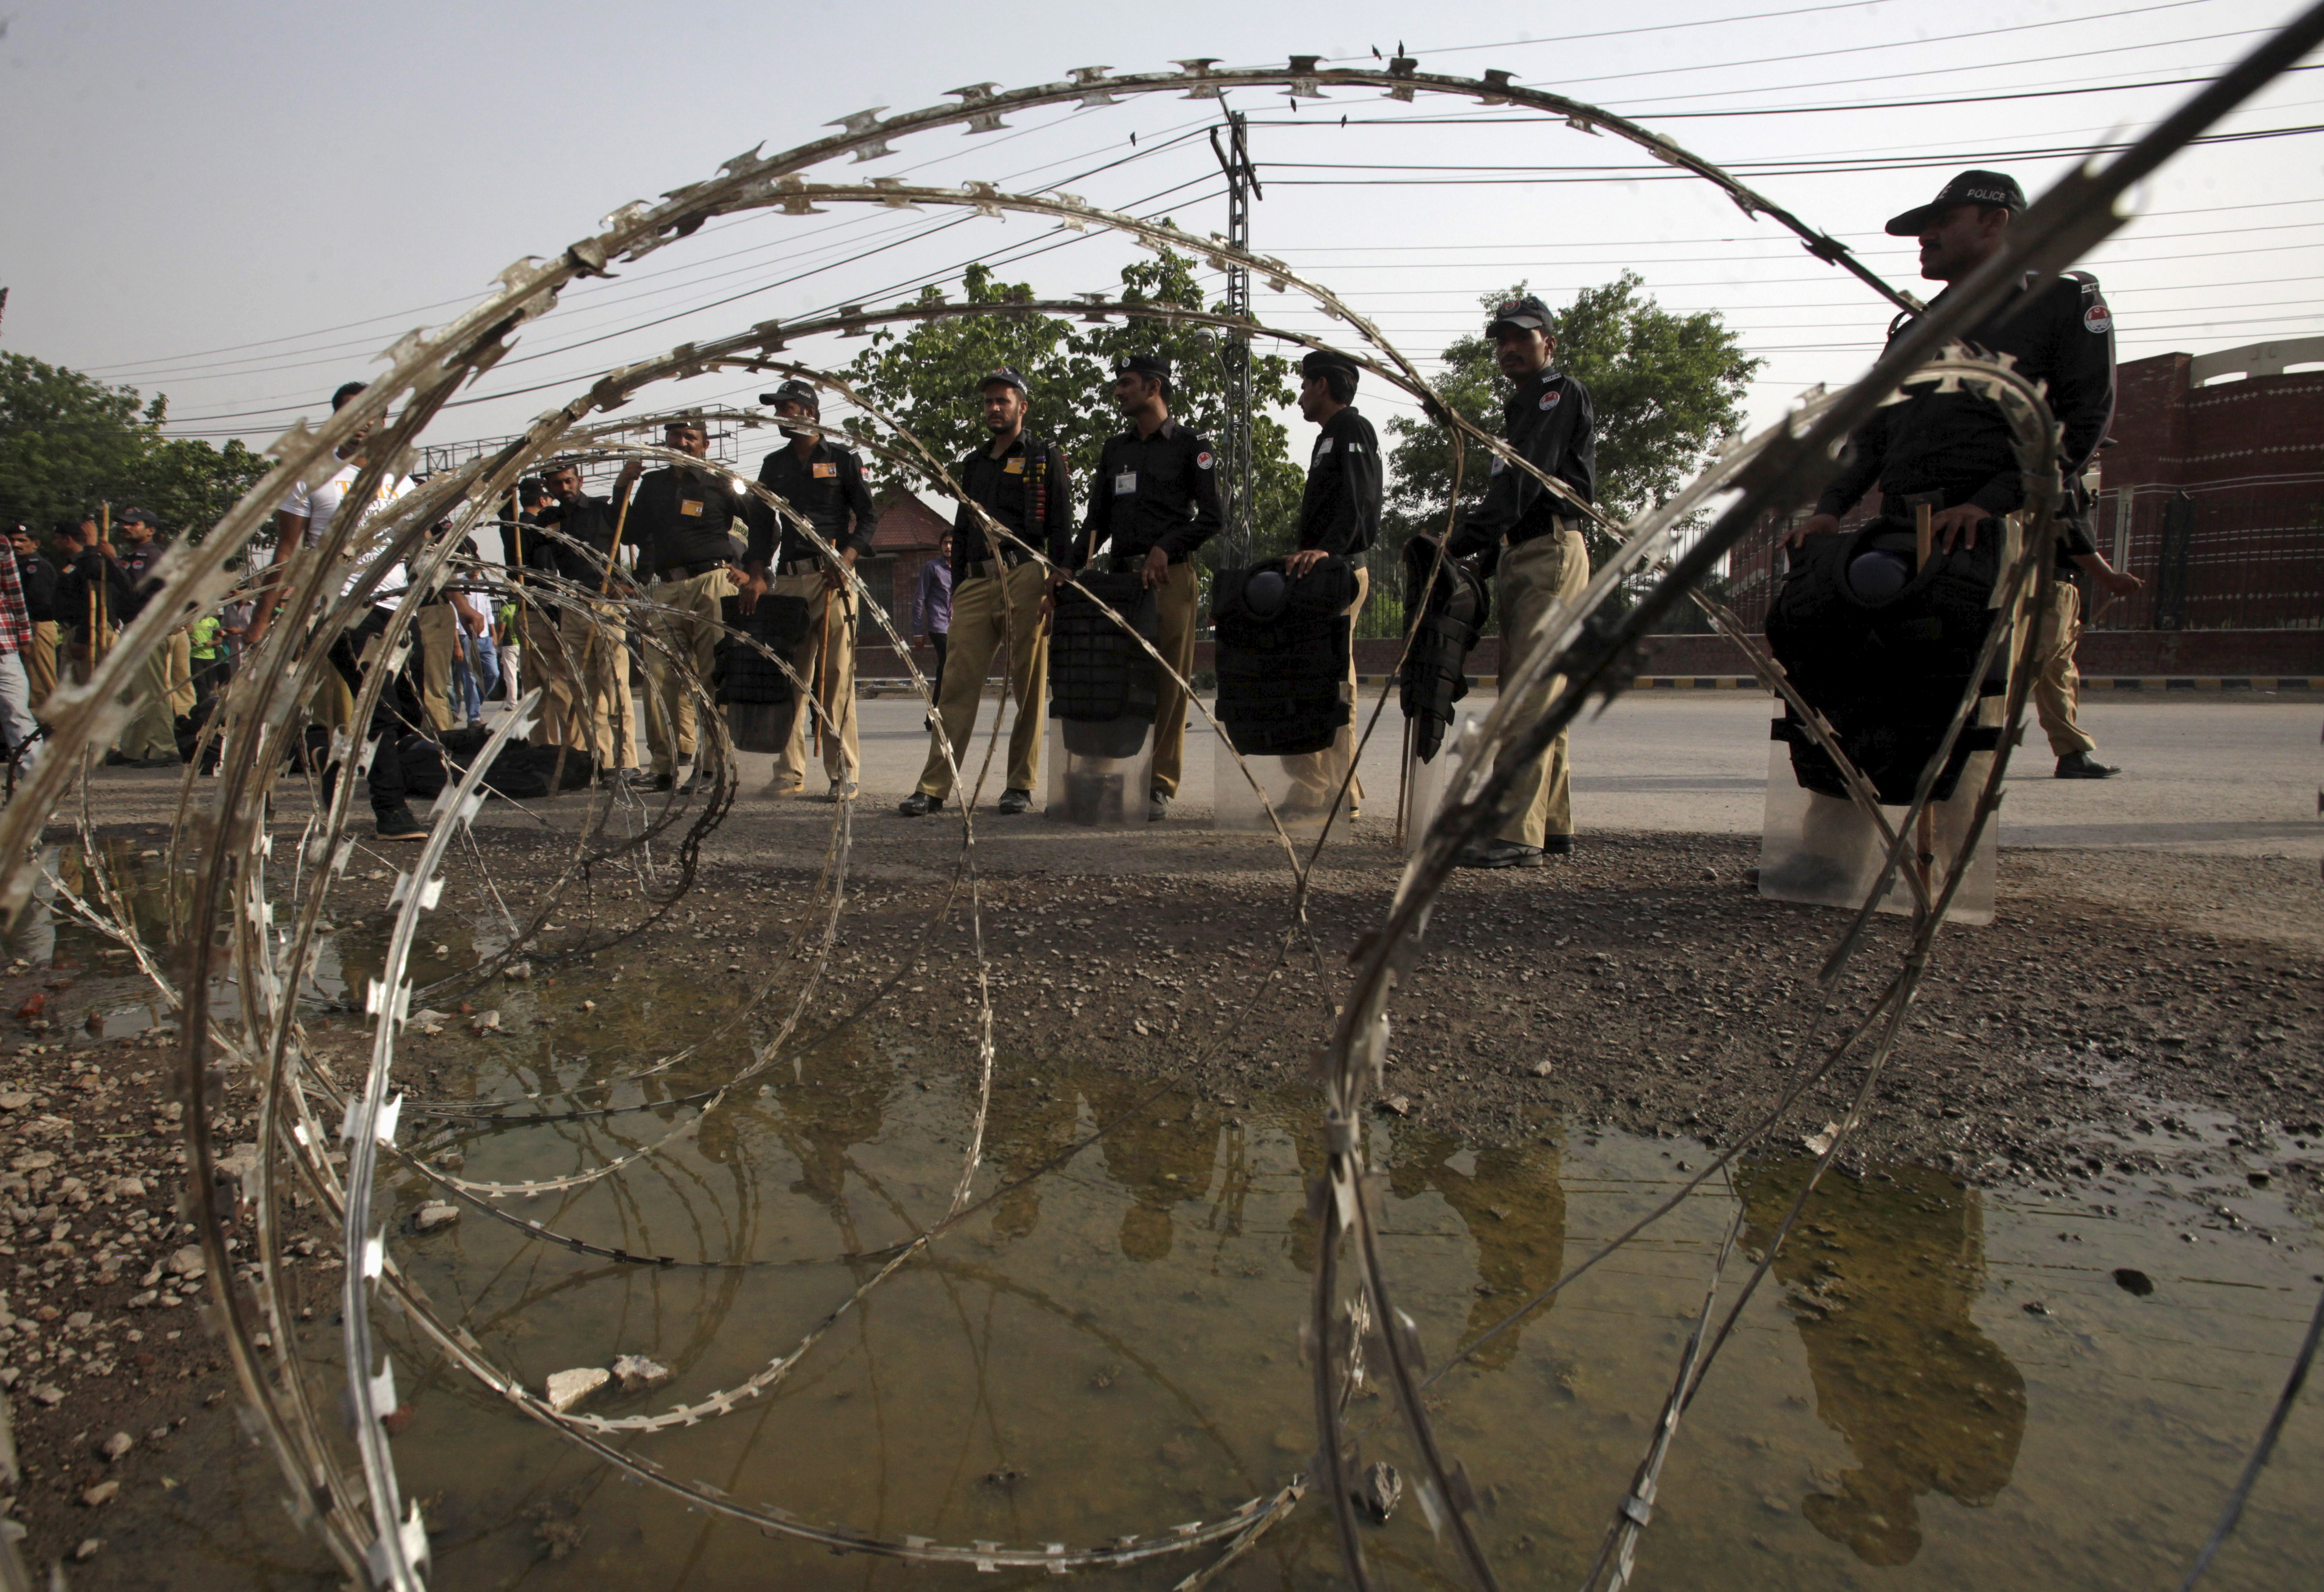 Policemen stand guard beside razor wire outside Gaddafi stadium before the second Twenty20 Cricket match between Pakistan and Zimbabwe in Lahore, Pakistan, May 24, 2015. Zimbabwe is the first test-playing nation to tour Pakistan since a 2009 terror attack on the Sri Lanka team bus in Lahore left the driver dead and several players injured. REUTERS/Mohsin Raza